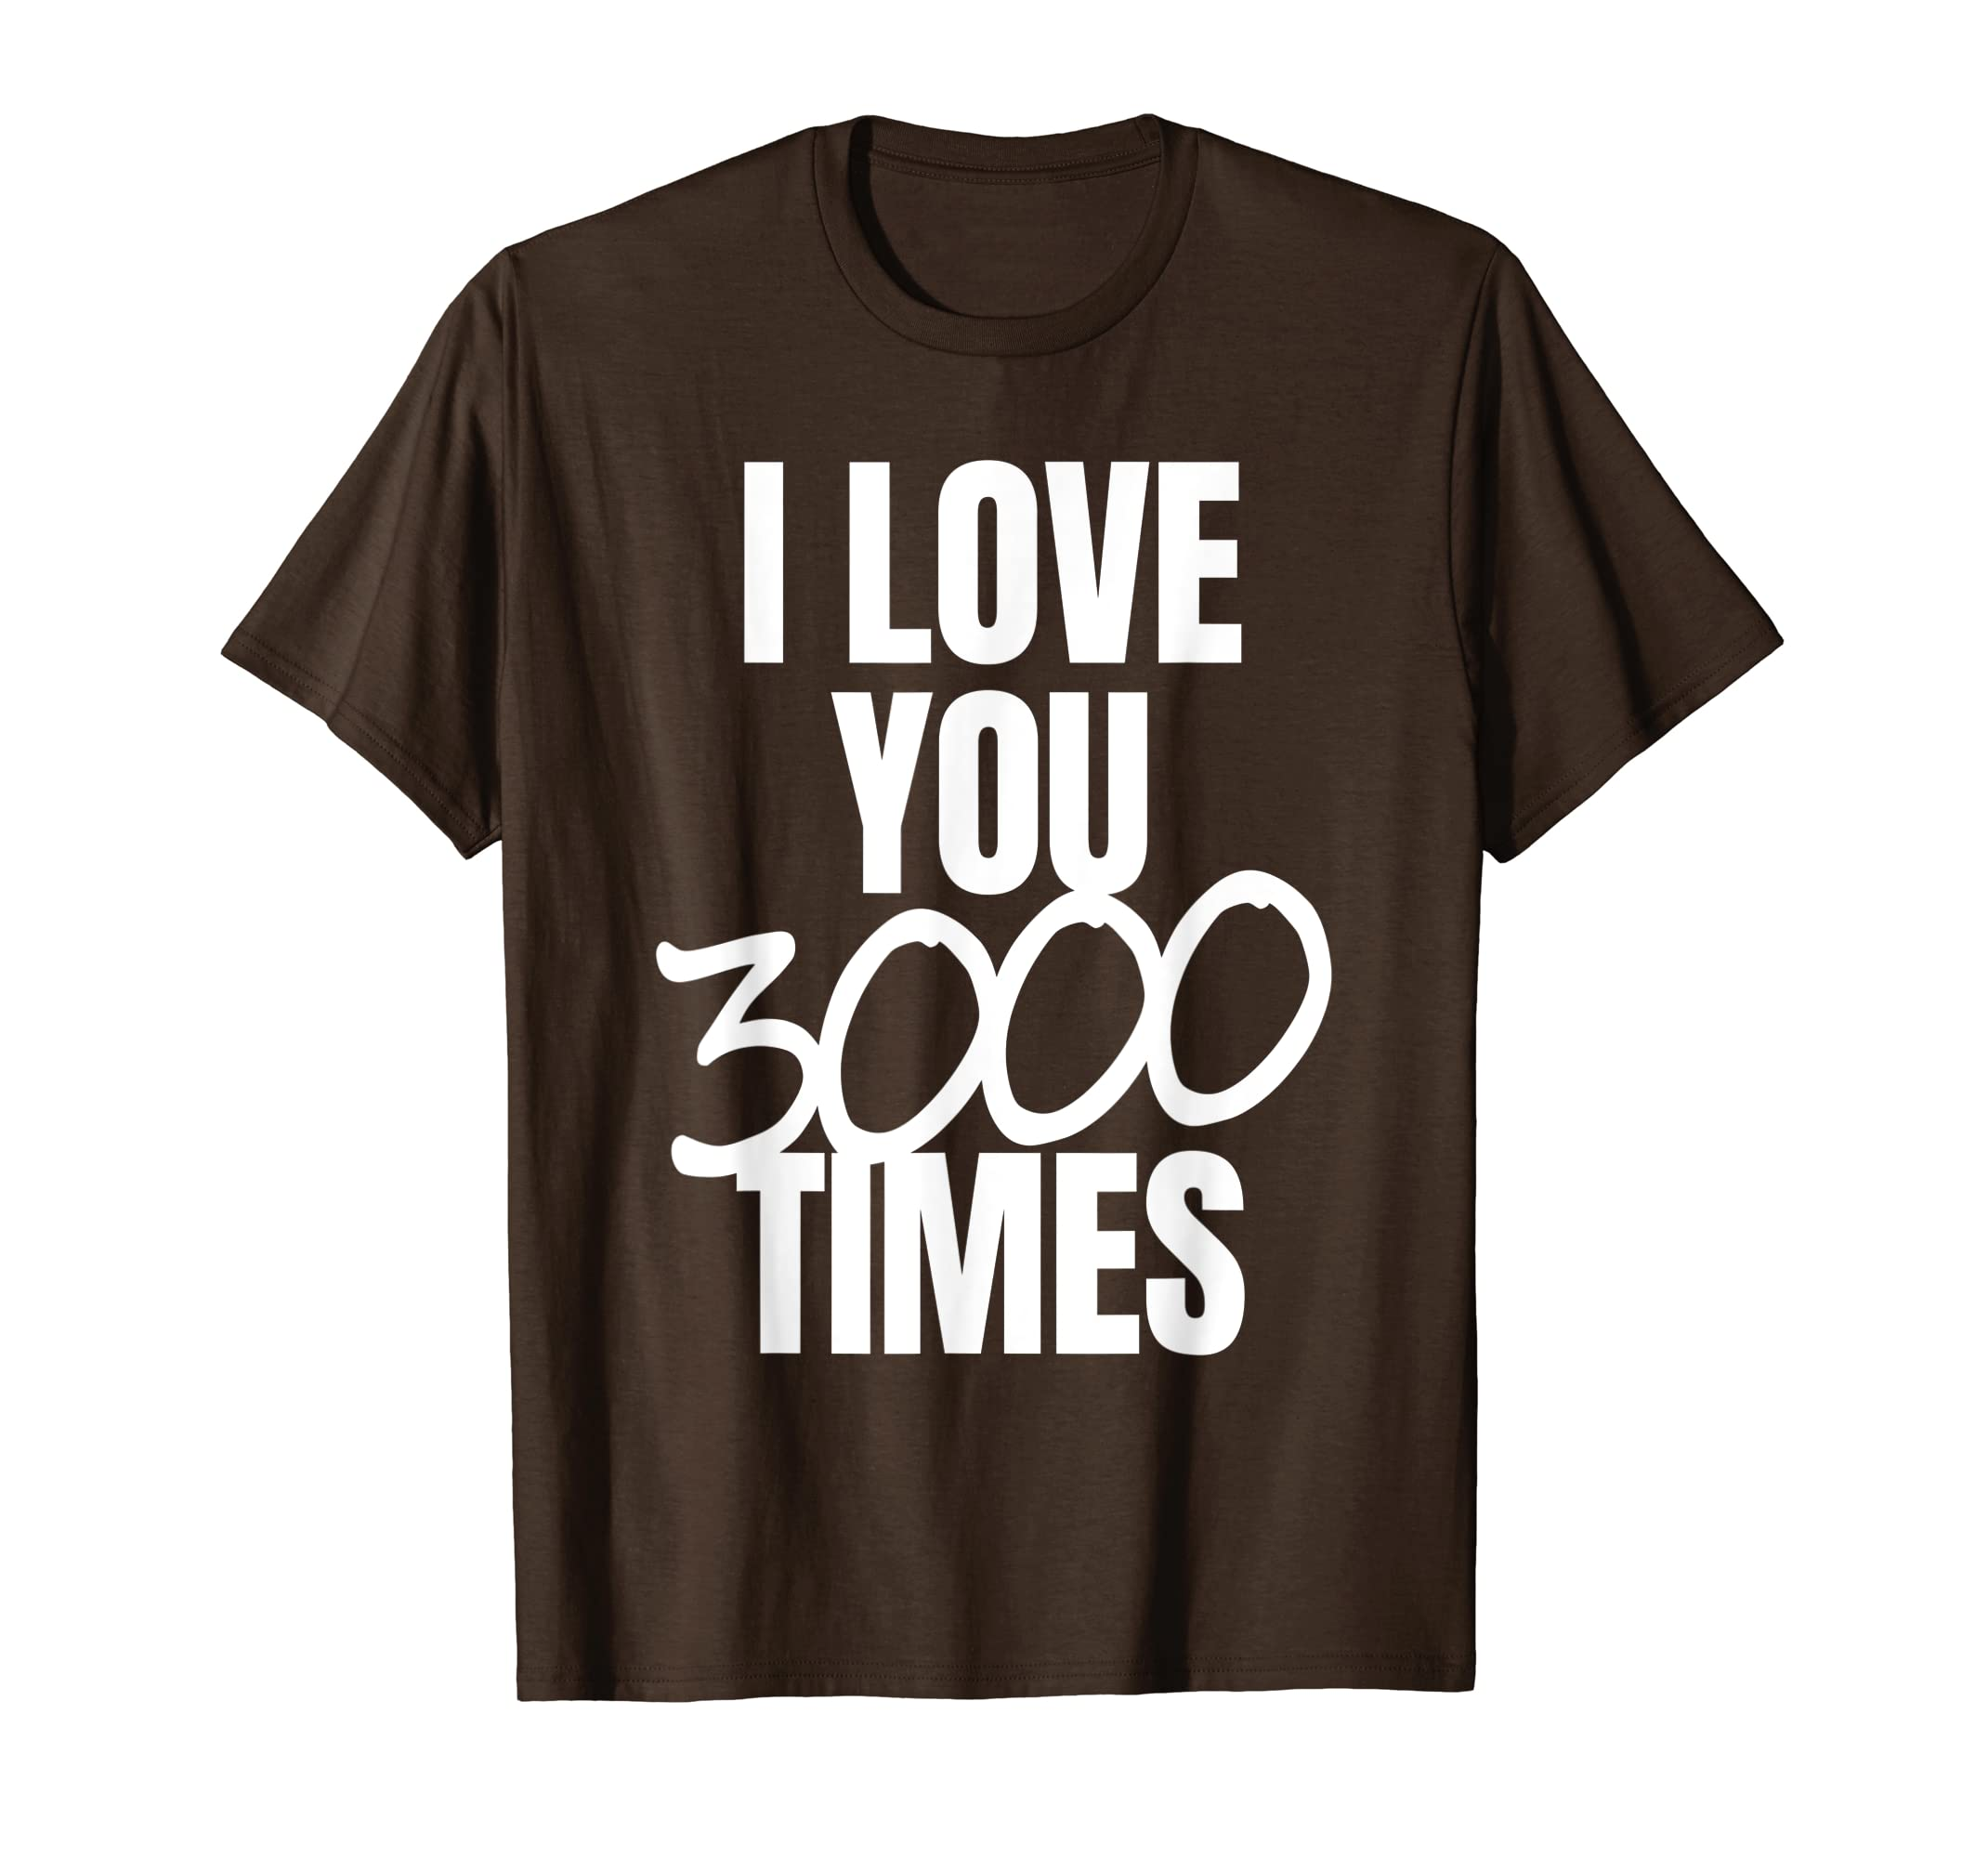 f7153c924 Amazon.com: I Love You 3000 Times Quote T-Shirt: Clothing